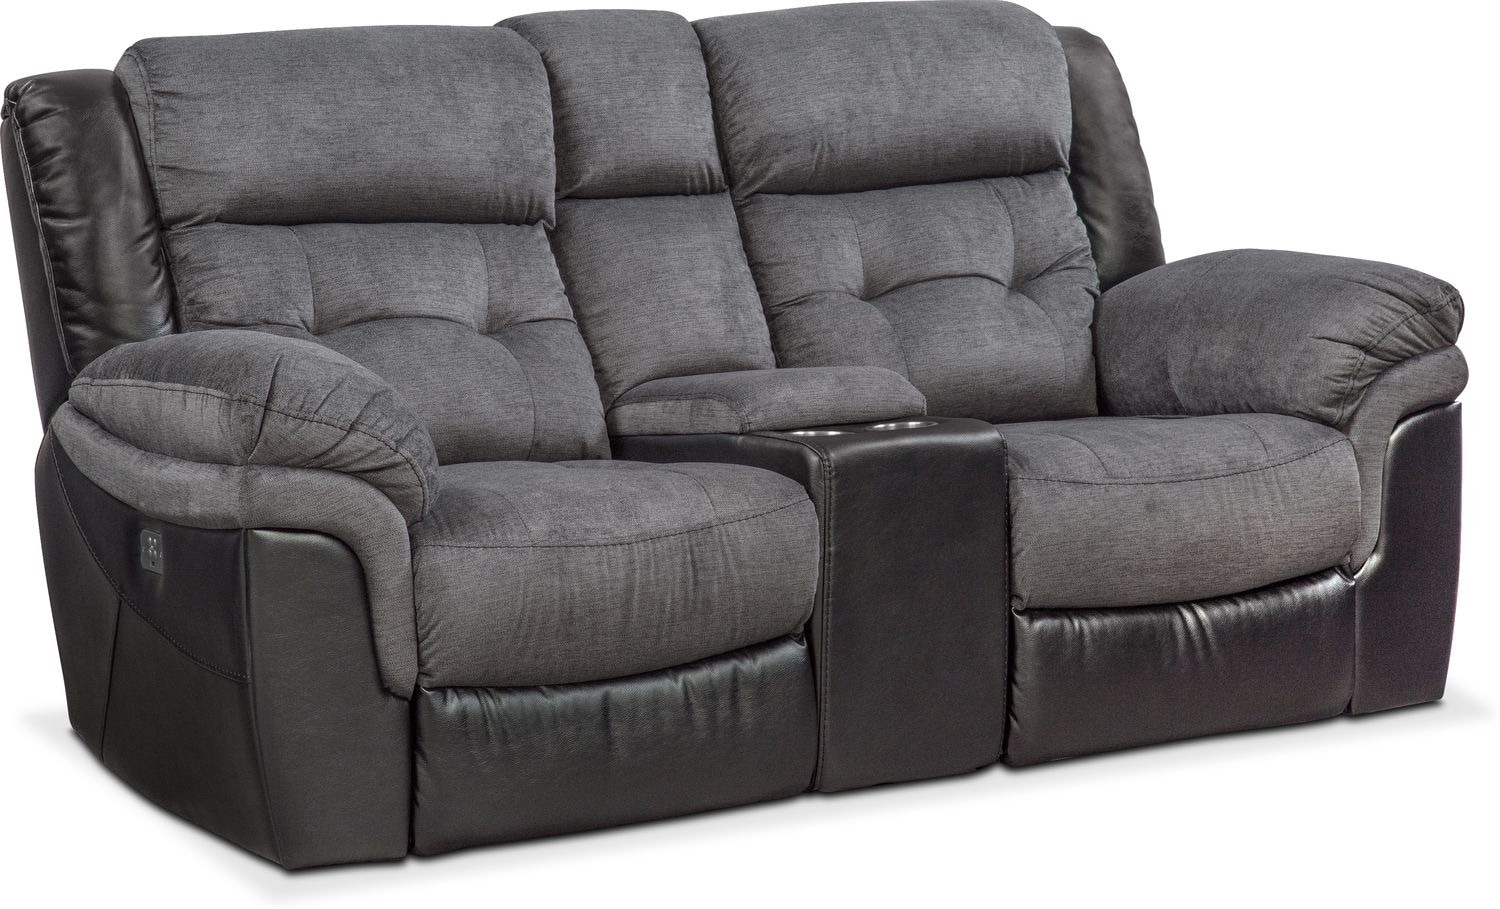 tacoma dual power reclining loveseat with console black value rh valuecityfurniture com power reclining sofa and loveseat with console maxwell power-reclining sofa and loveseat